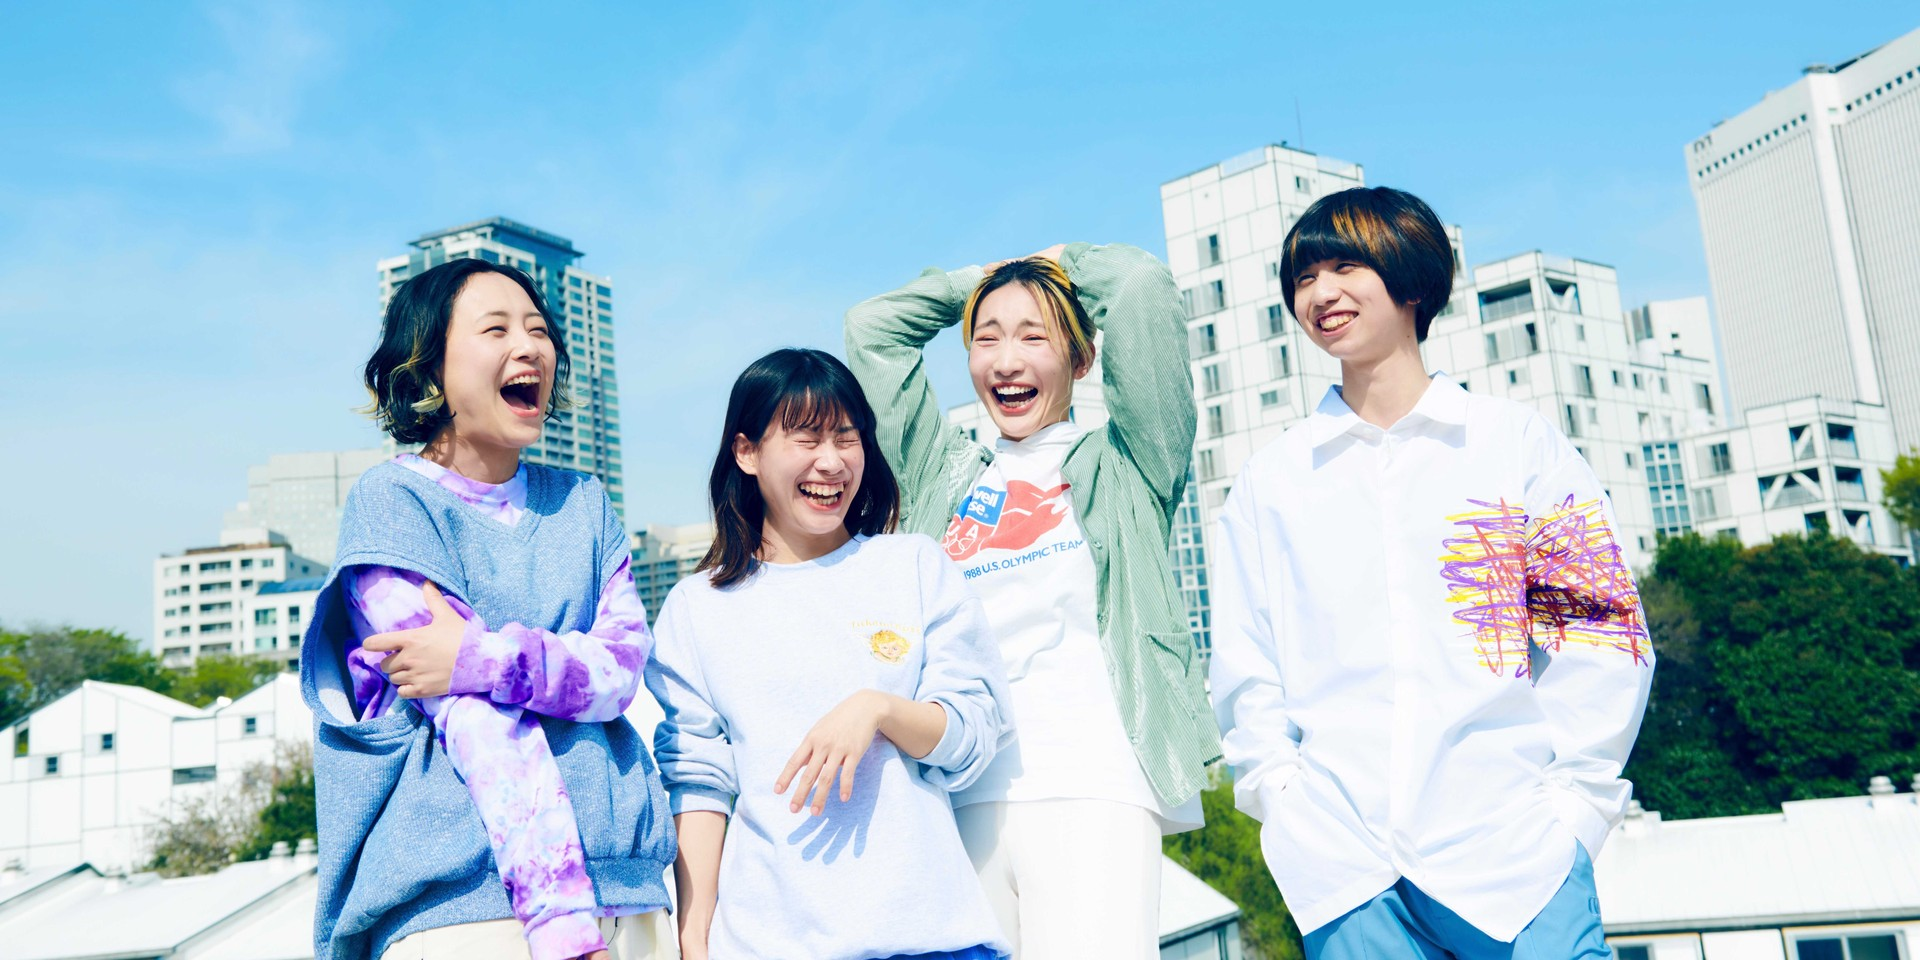 tricot on their new song 'INAI', resistance towards genre, and growing as a band